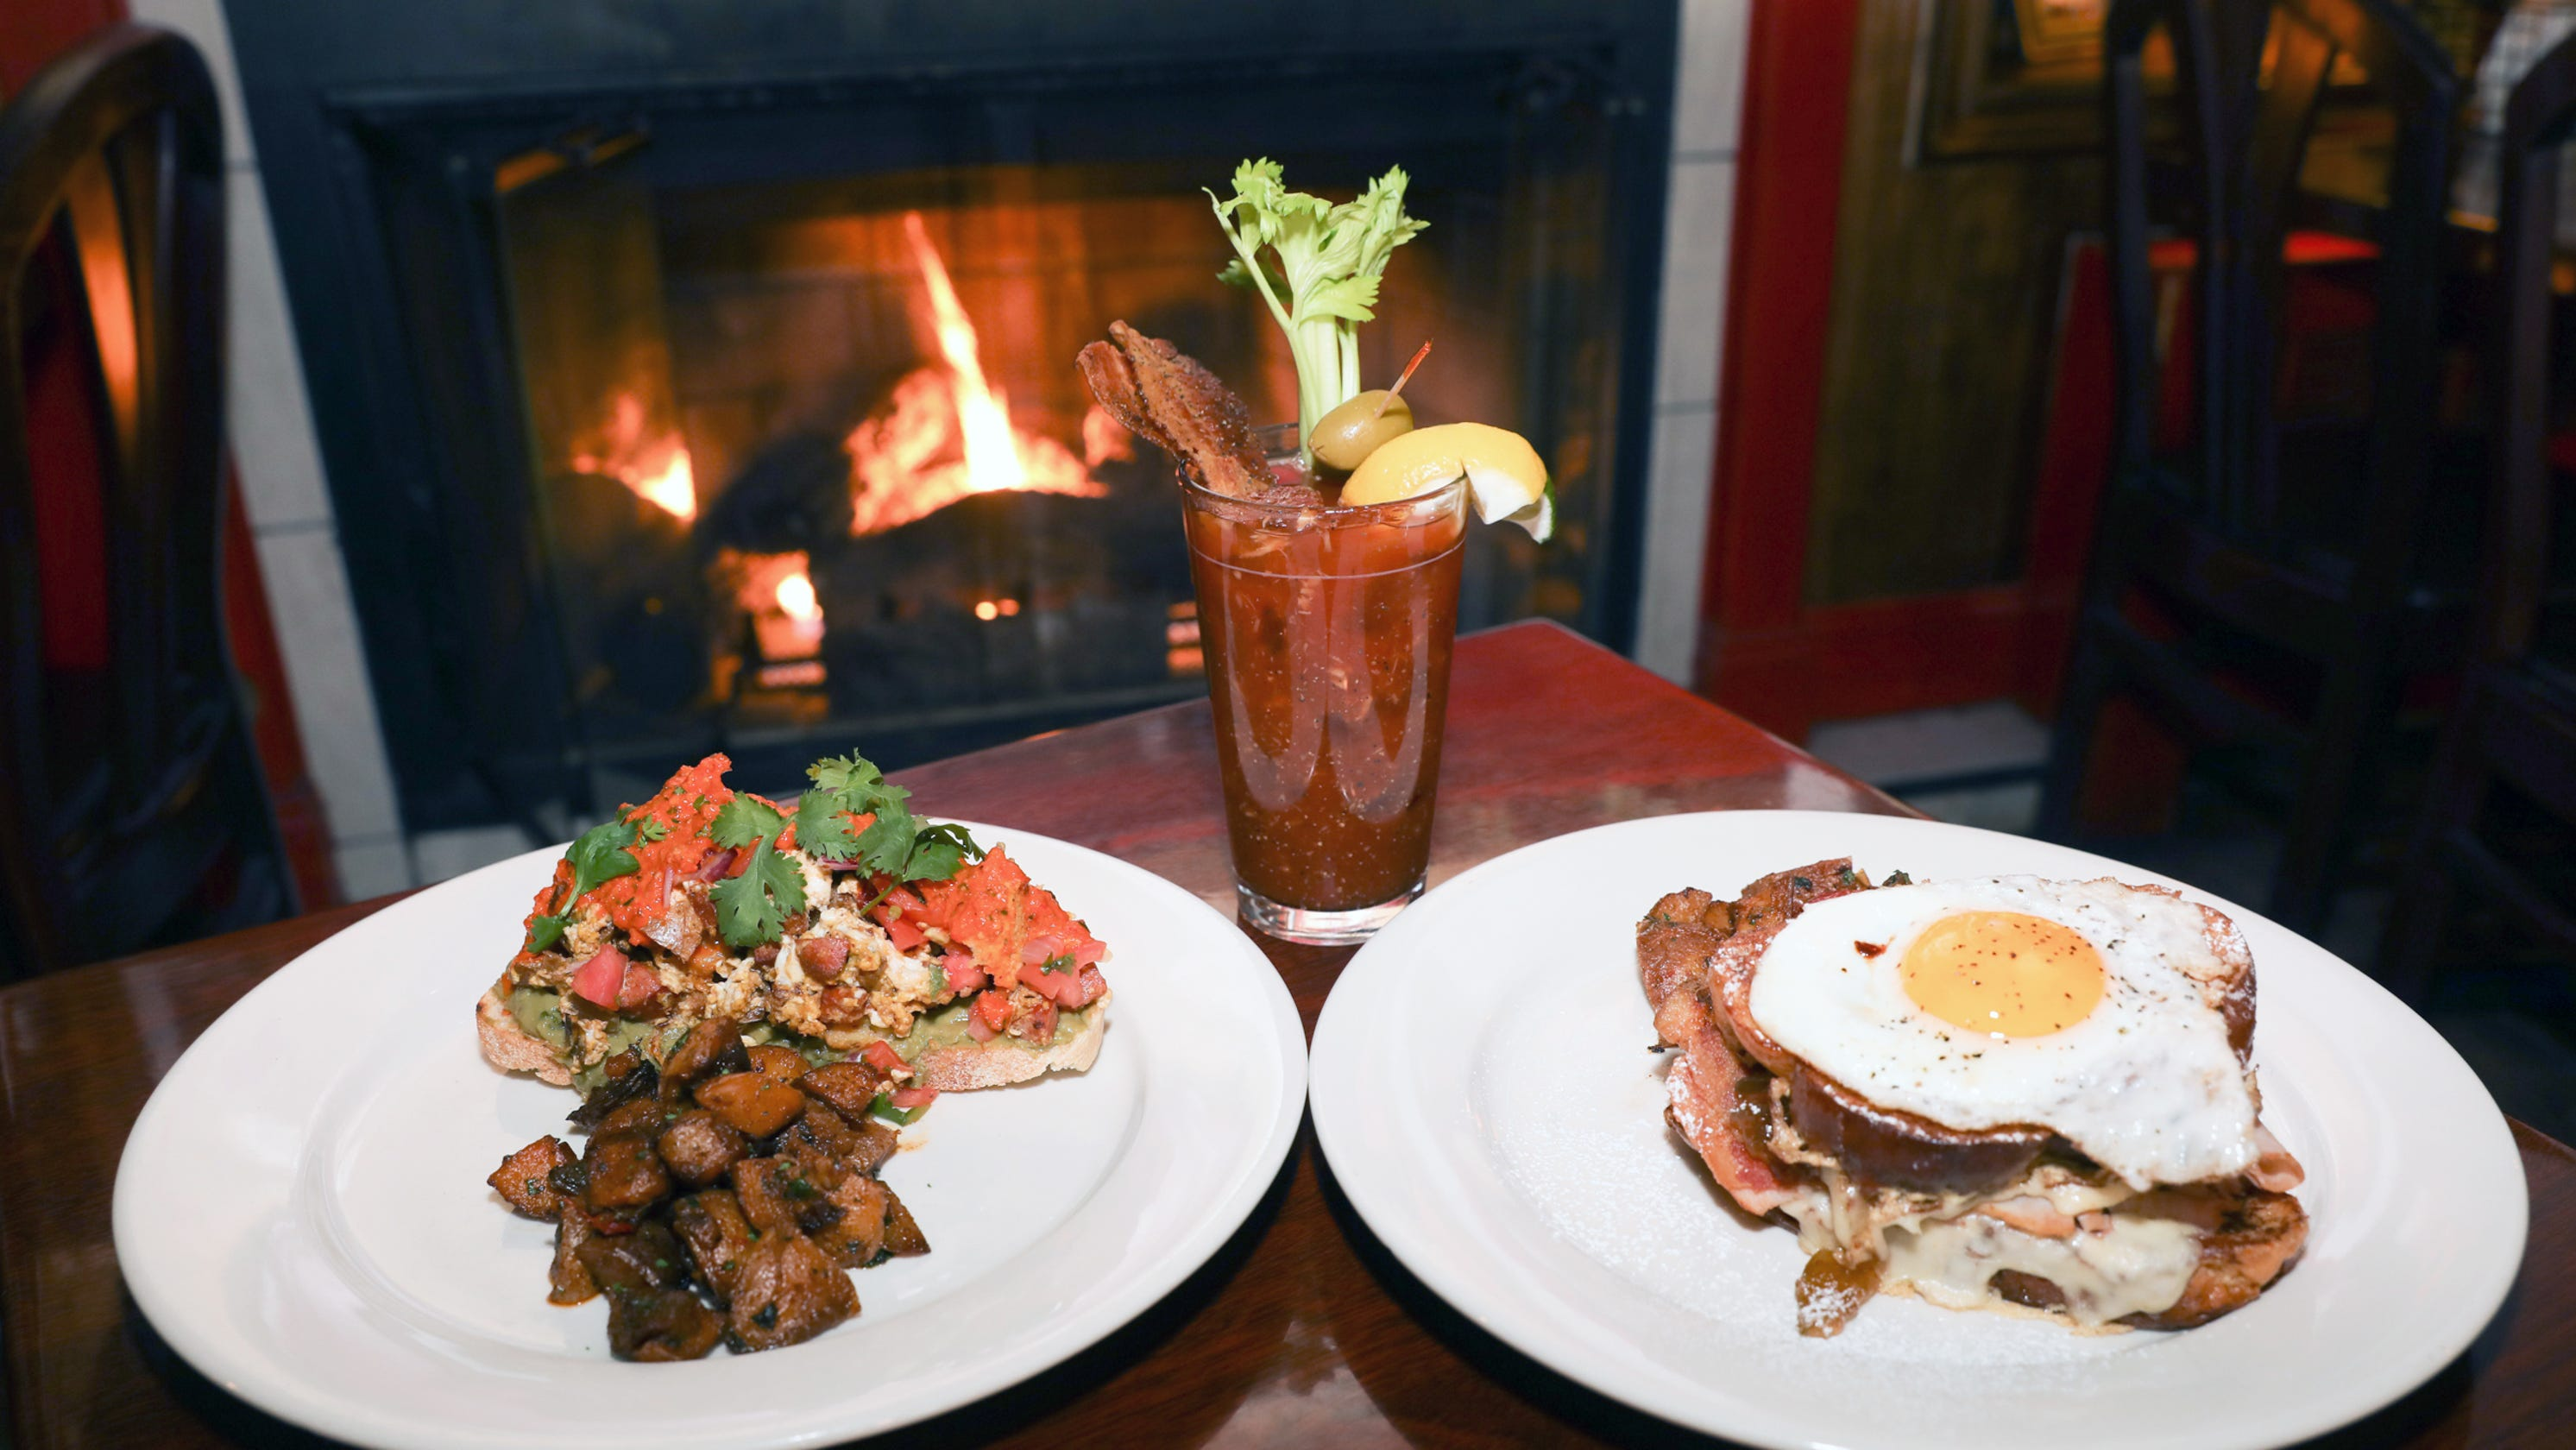 Best bets for brunch in the Hudson Valley